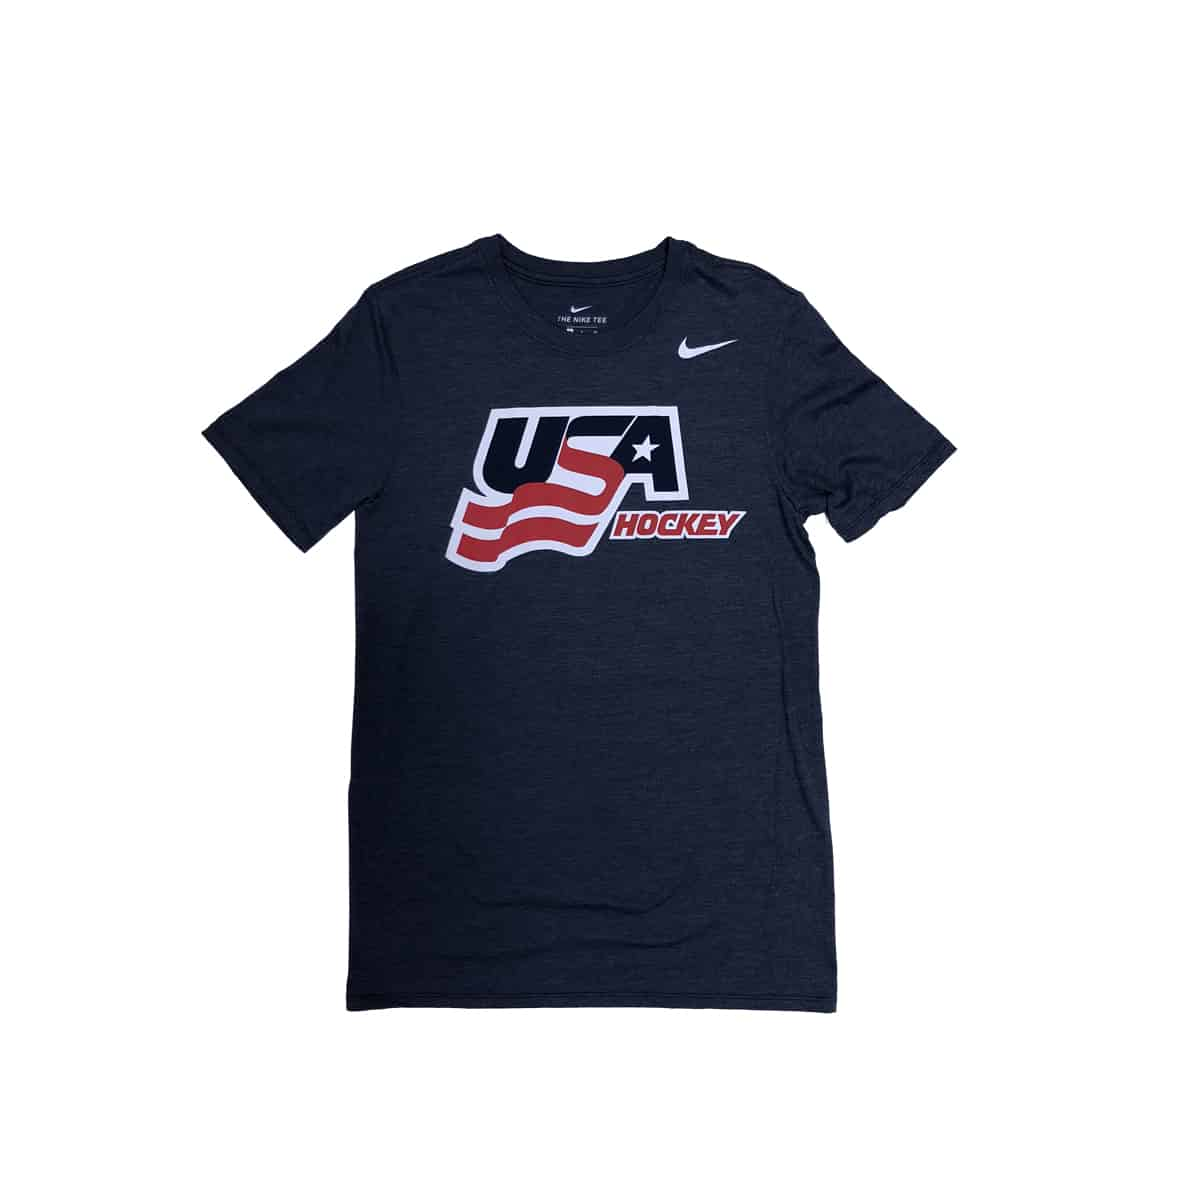 USA Hockey Nike Athletic Tri-Blend Tee